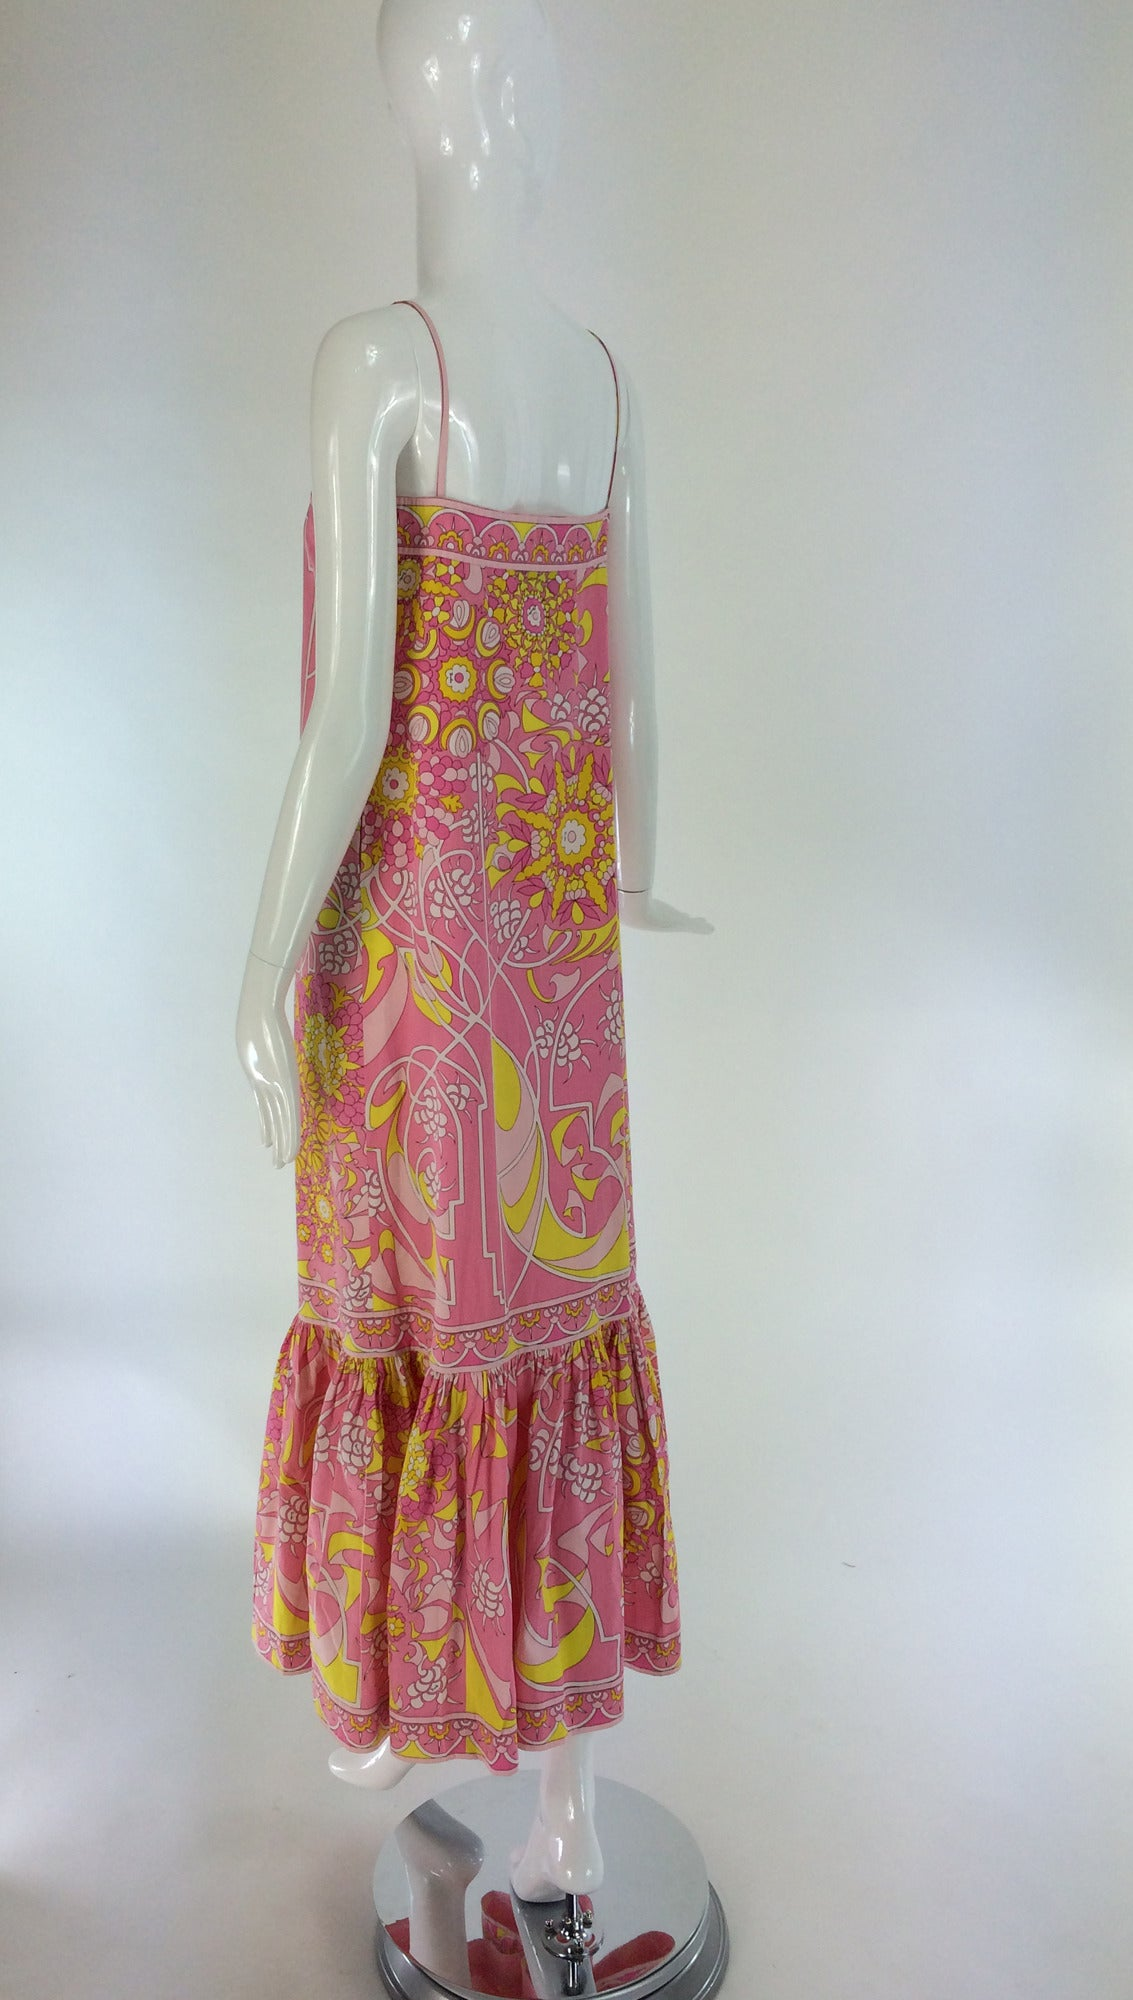 Emilio Pucci printed cotton maxi dress out of the ordinary design 1960s For Sale 3